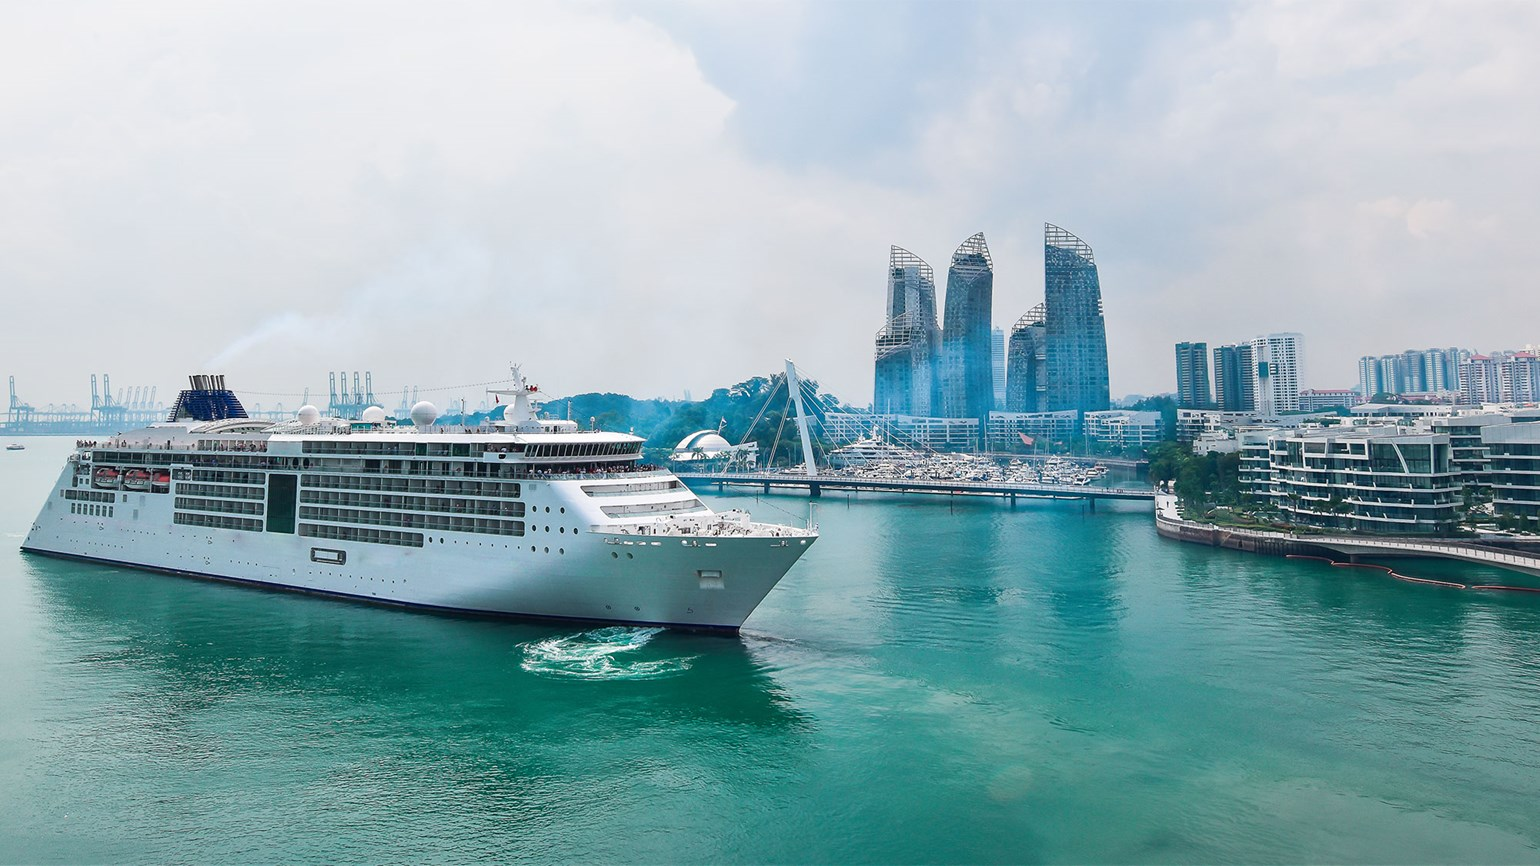 Cruise Ship Schedules Cruises Cruise Deals Prices Cruise Line - How much does a cruise ship captain get paid